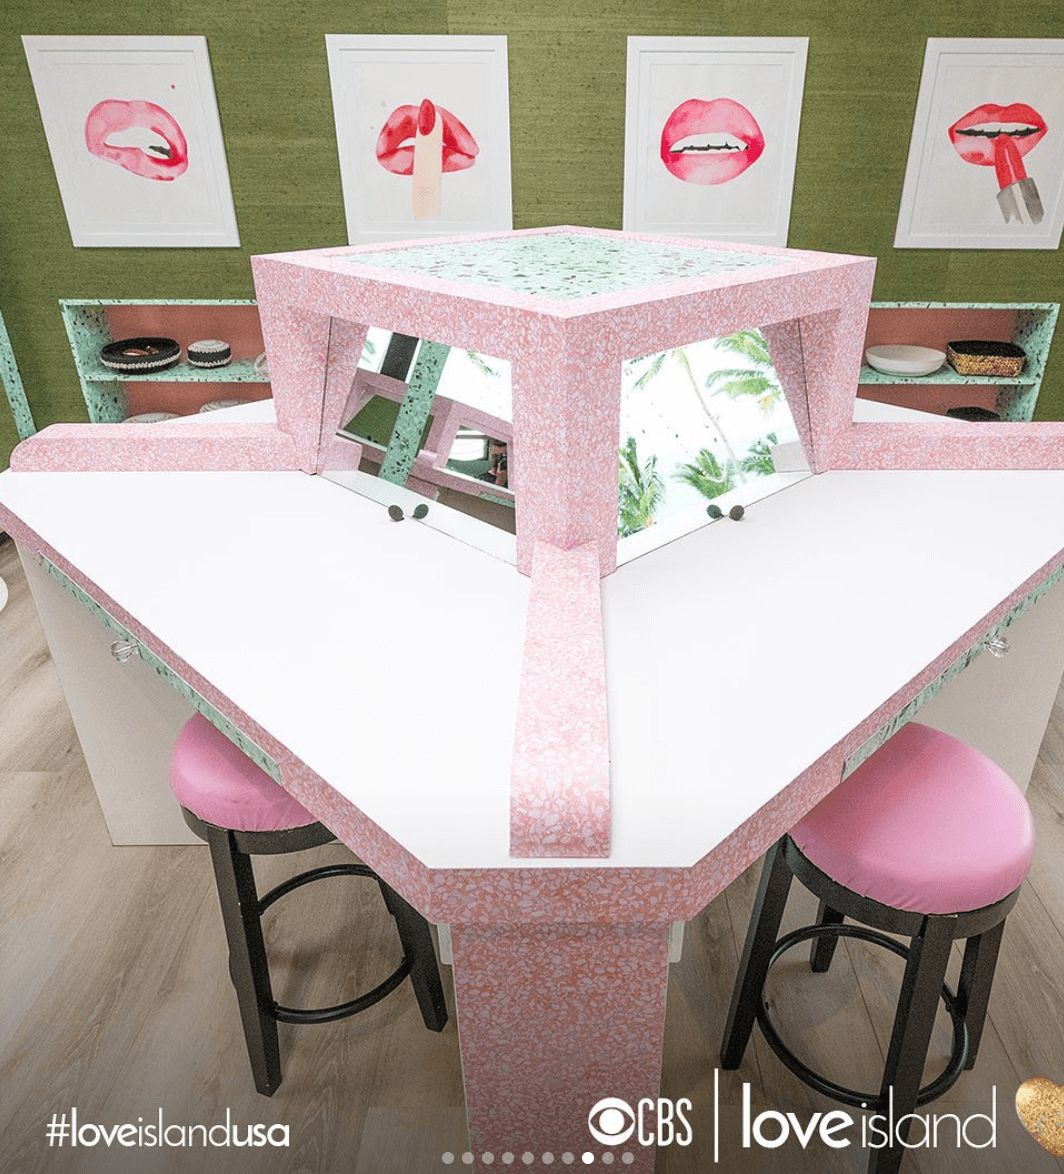 Image may contain: Love Island USA villa, Love Island USA, villa, Love Island, CBS, dressing, room, Fiji, bedroom, Indoors, Room, Chair, Dining Table, Table, Home Decor, Furniture